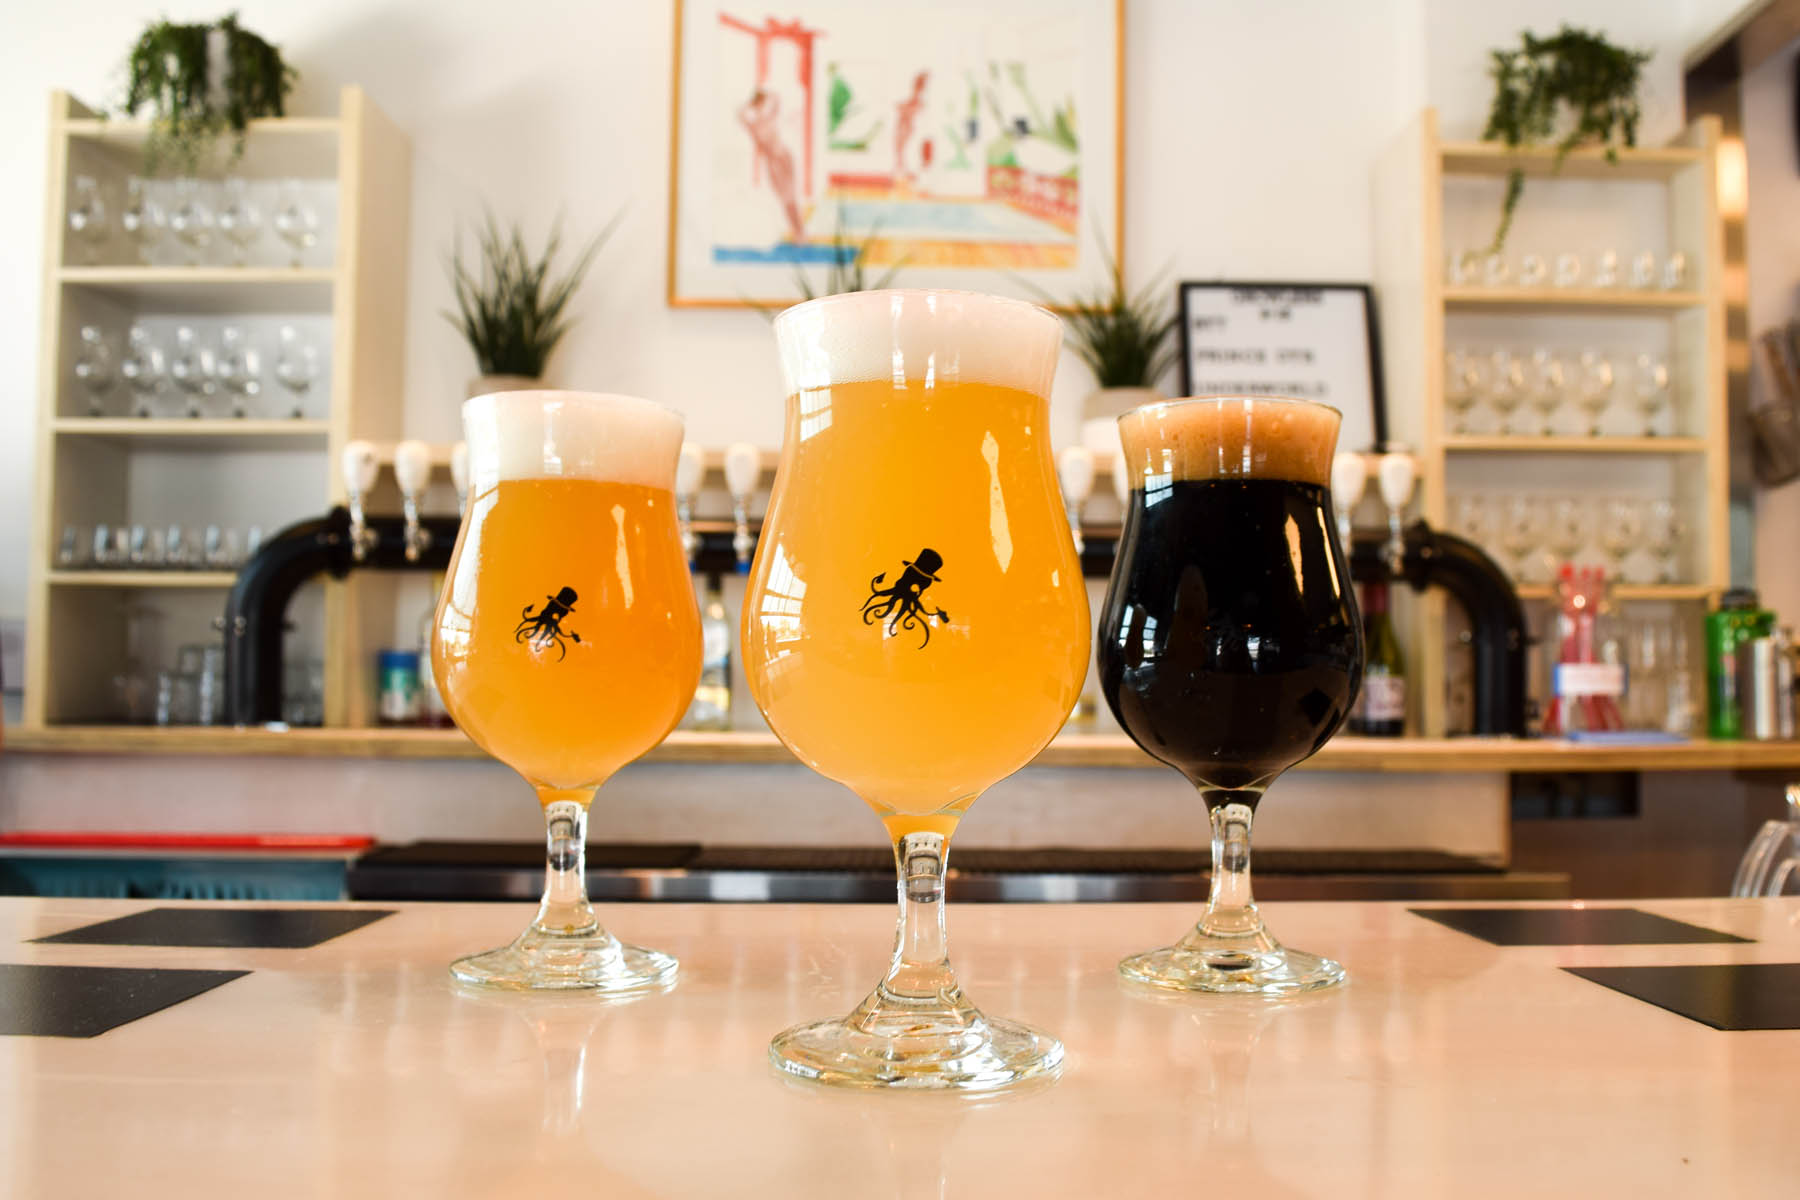 Welcome to Calgary, the Unlikely Epicenter for Western Canada's Craft Beer Boom